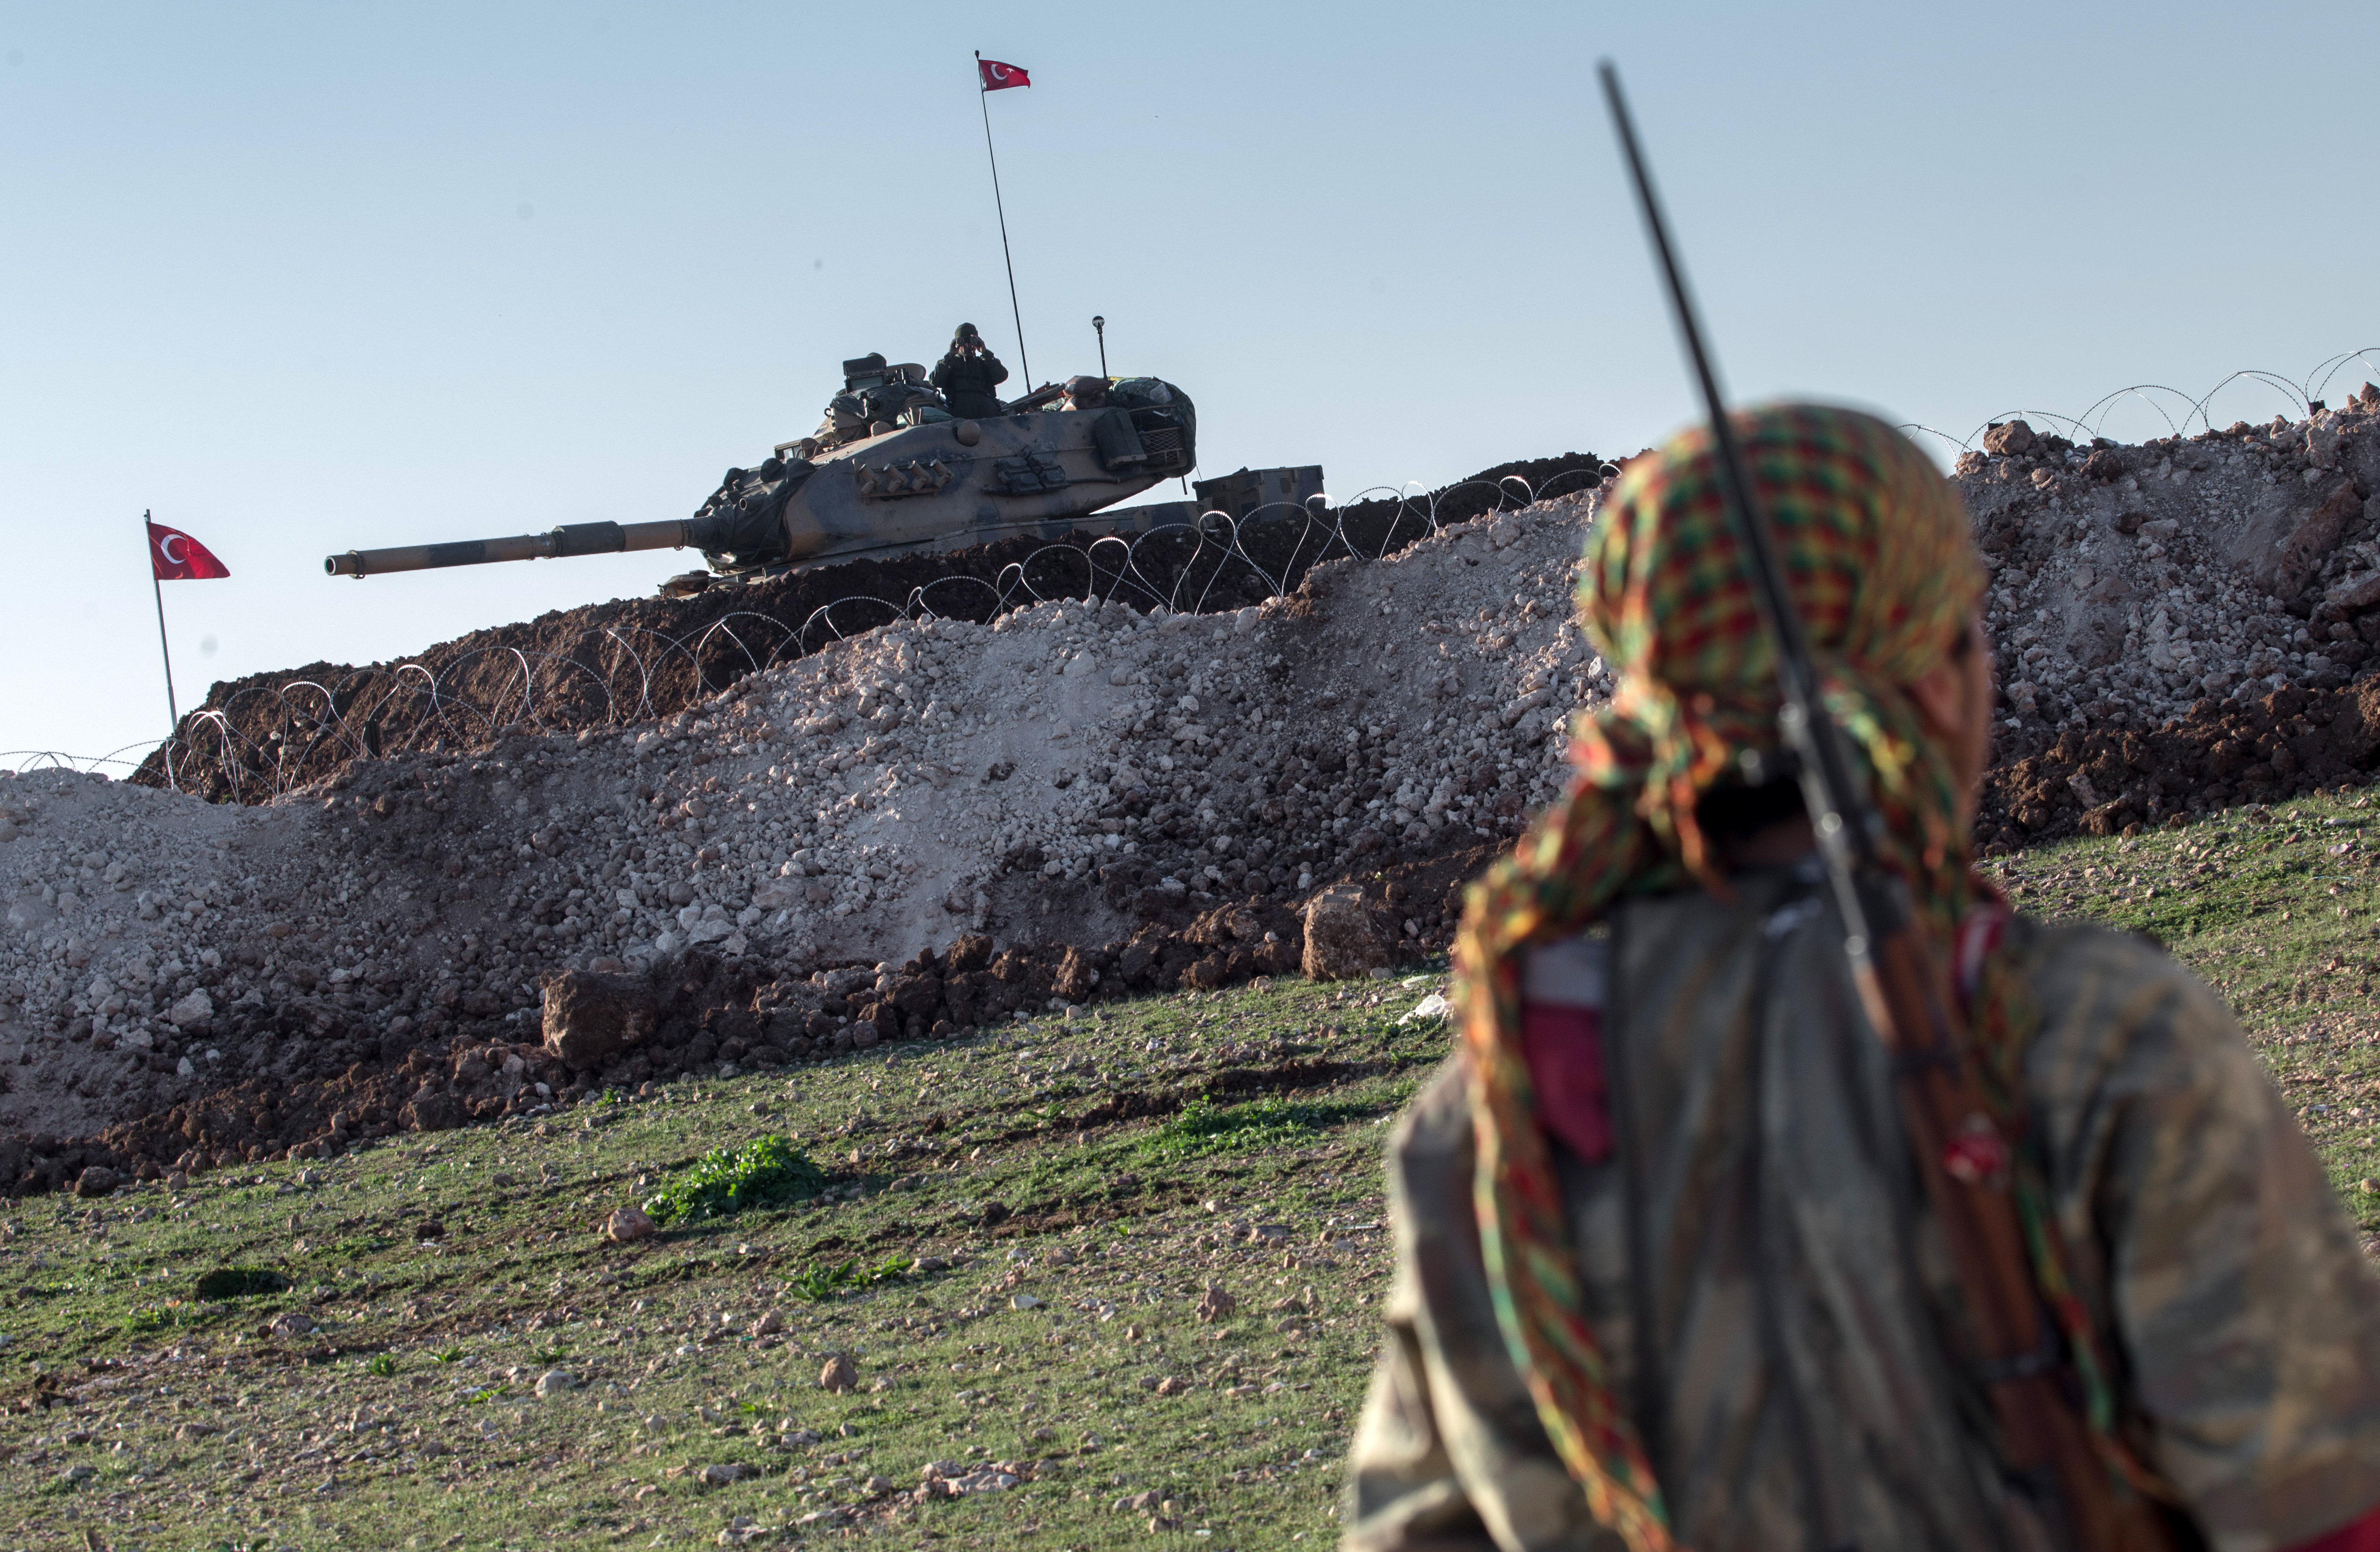 A Syrian Kurdish militia member of YPG patrols near a Turkish army tank as Turks work to build a new Ottoman tomb in the background in Esme village in Aleppo province, Syria. (File)